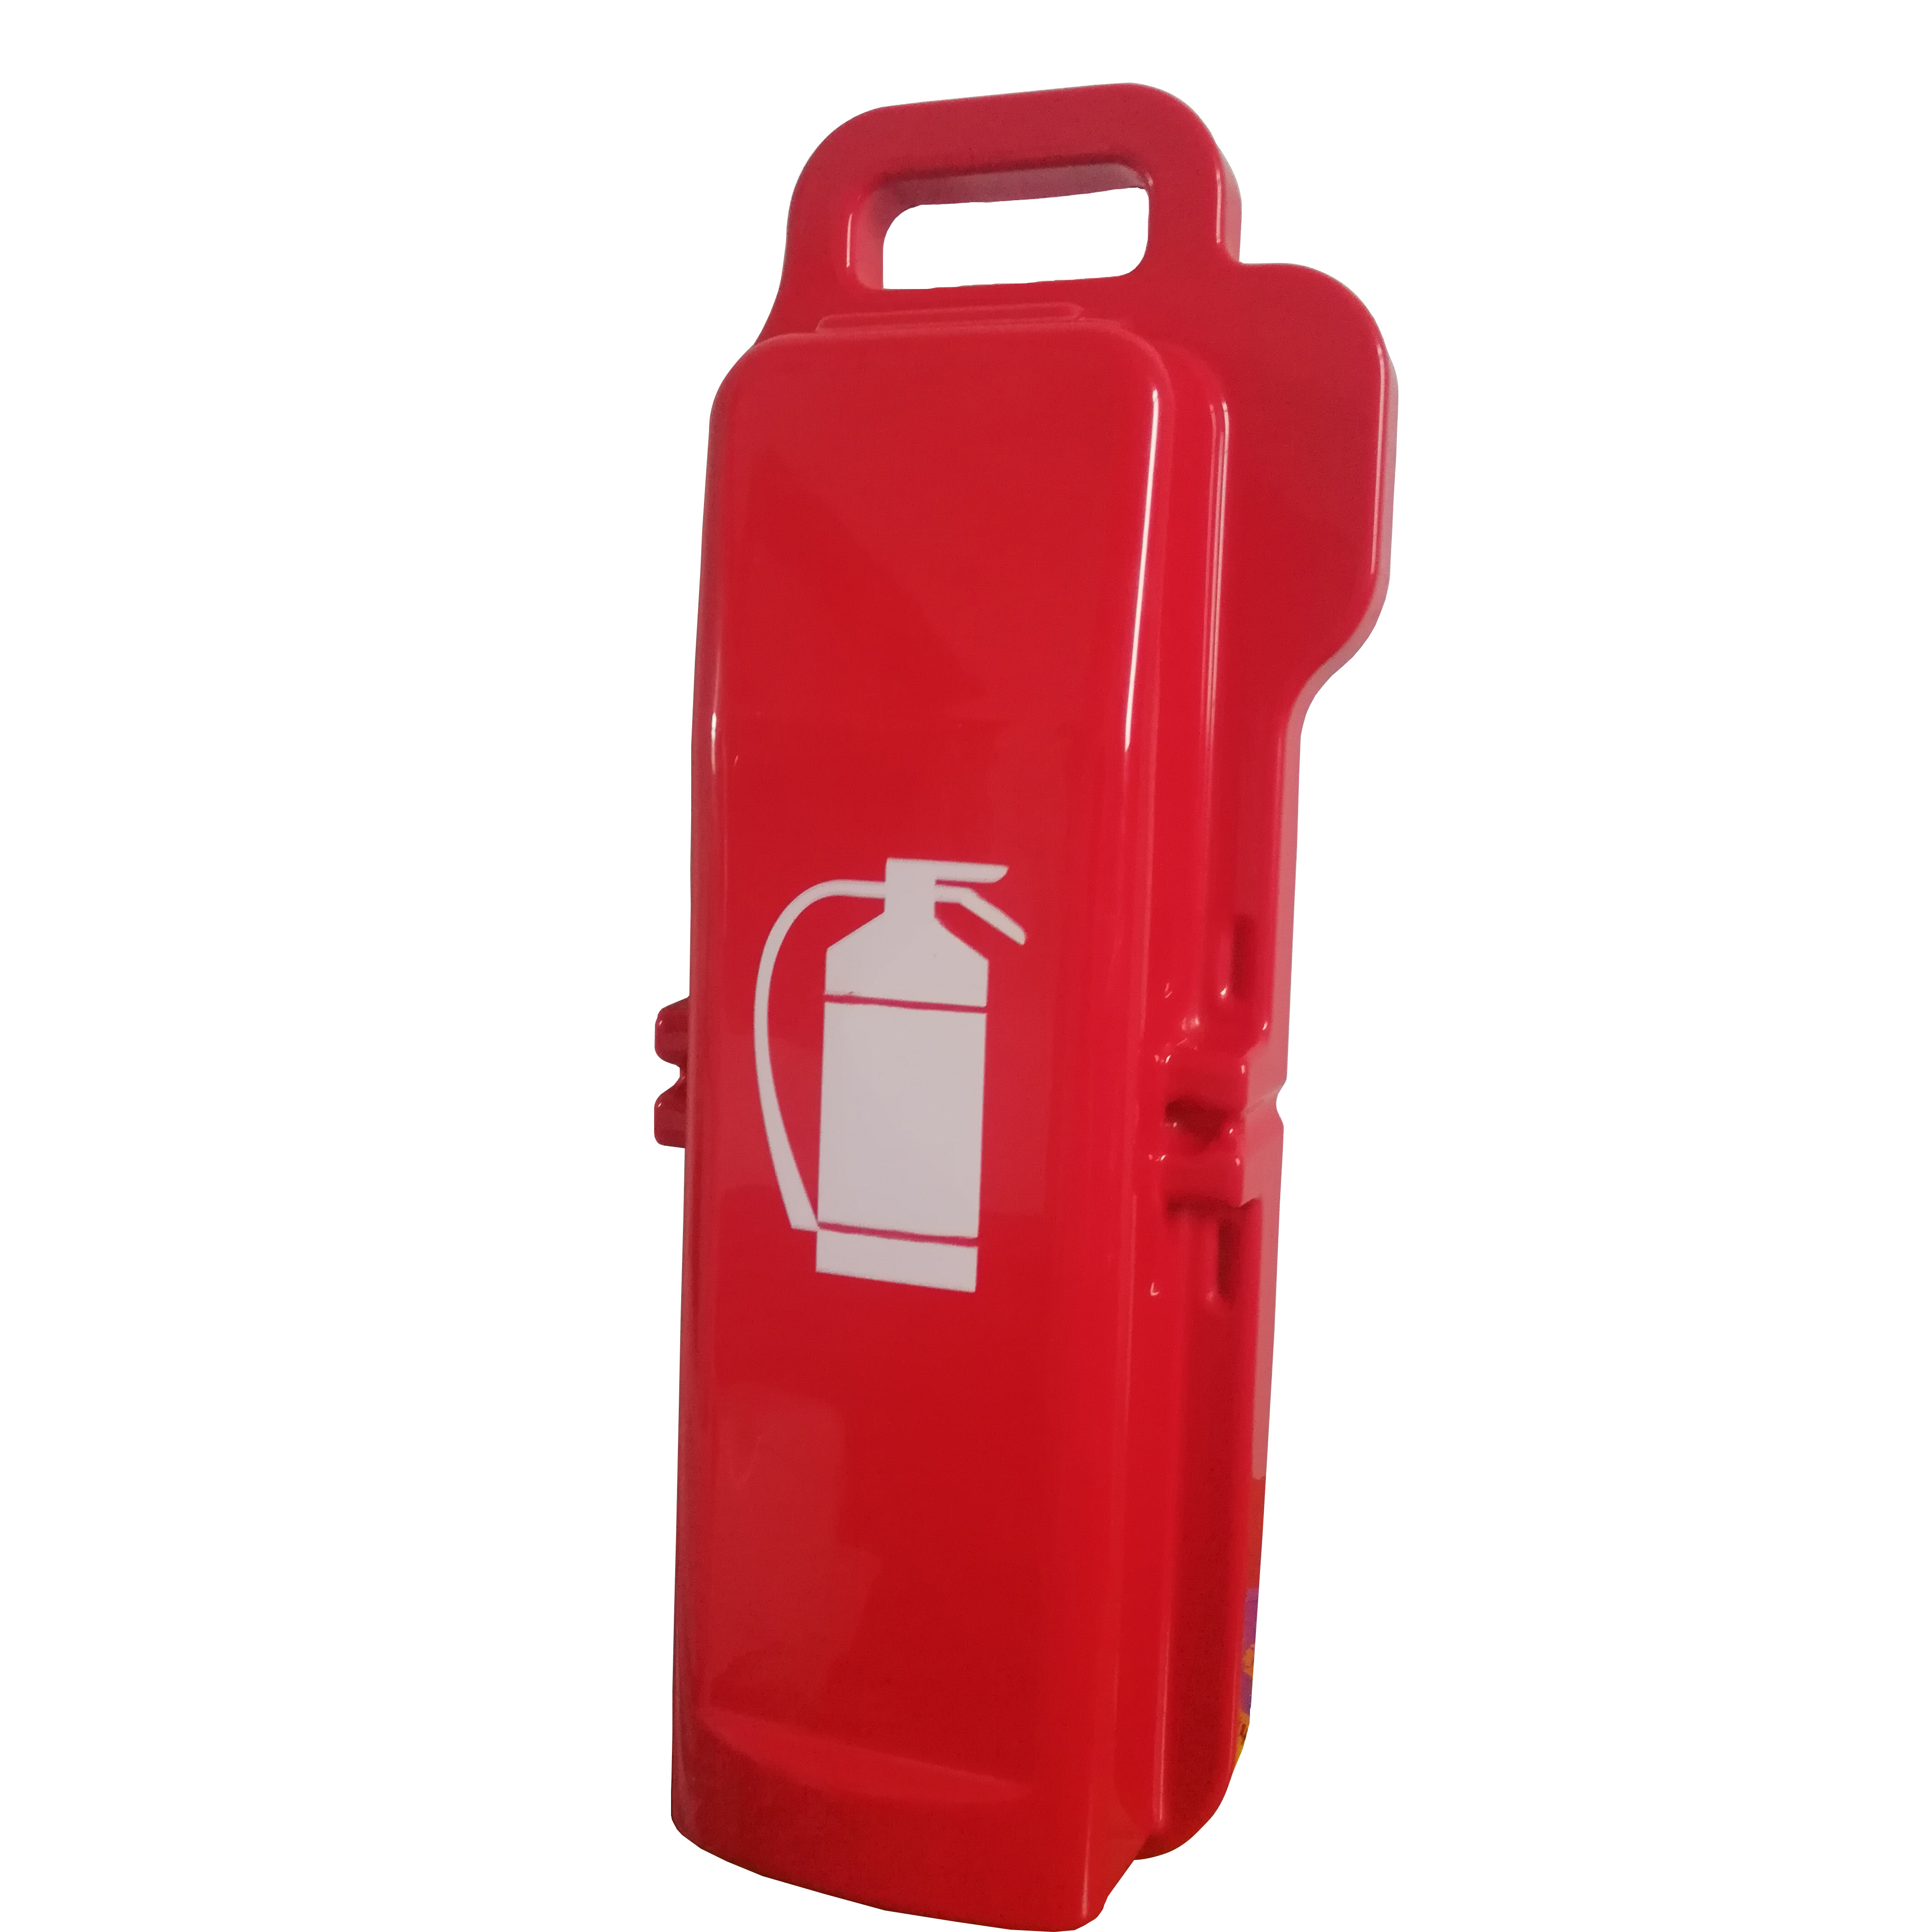 ningbo yuyao thermoforming fire equipment plastic products fire extinguisher plastic cabinets vacuum forming plastics boxes